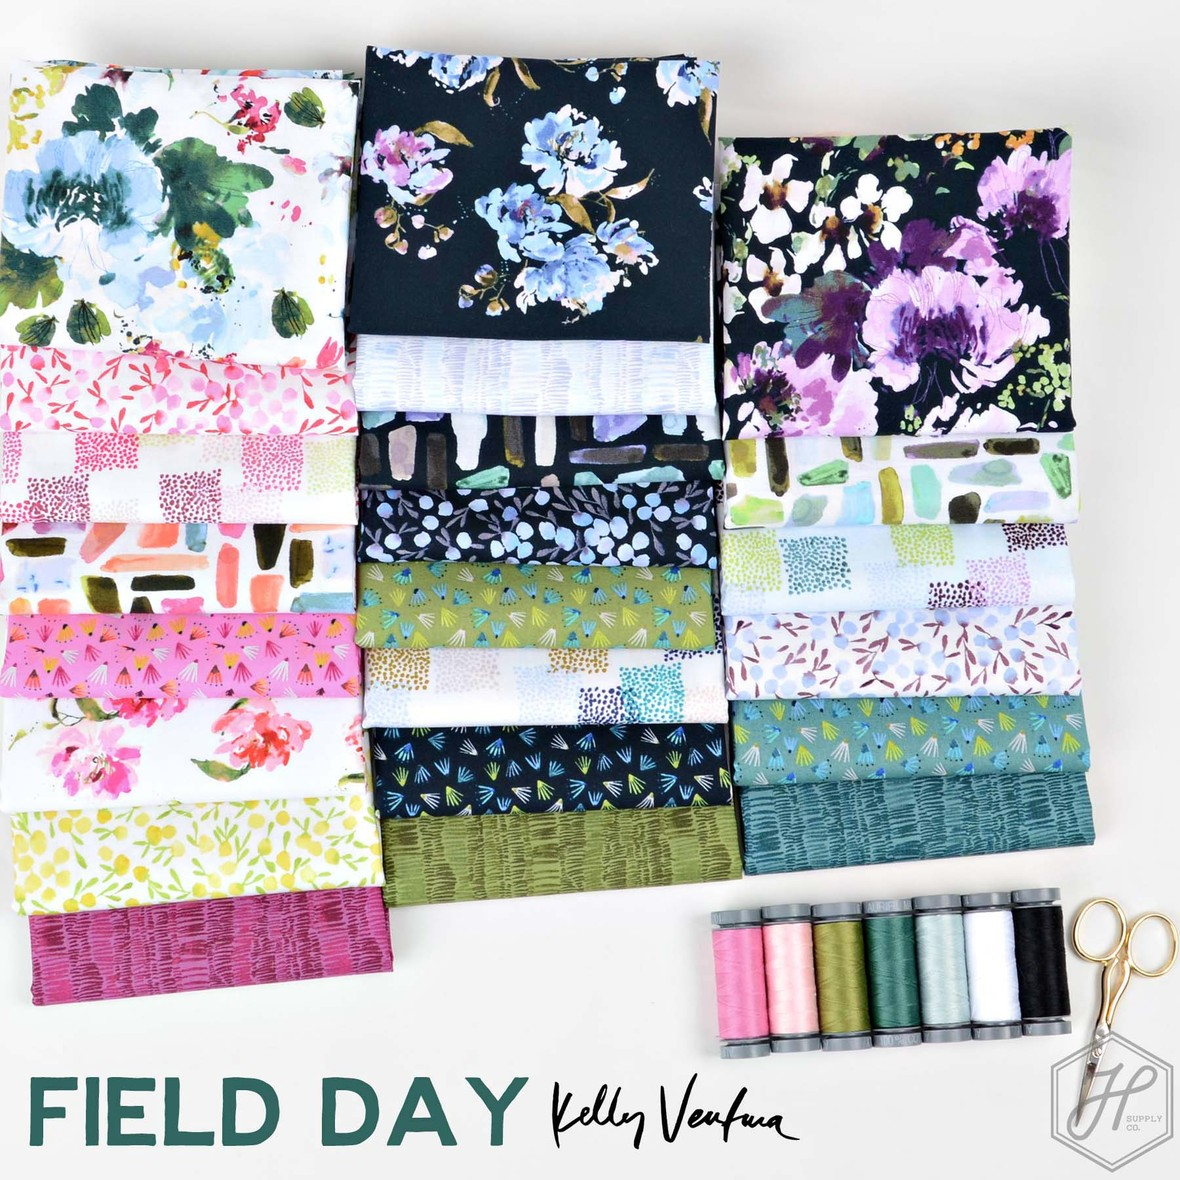 Field Day Fabric Kelly Ventura for Hawthorne Supply Co